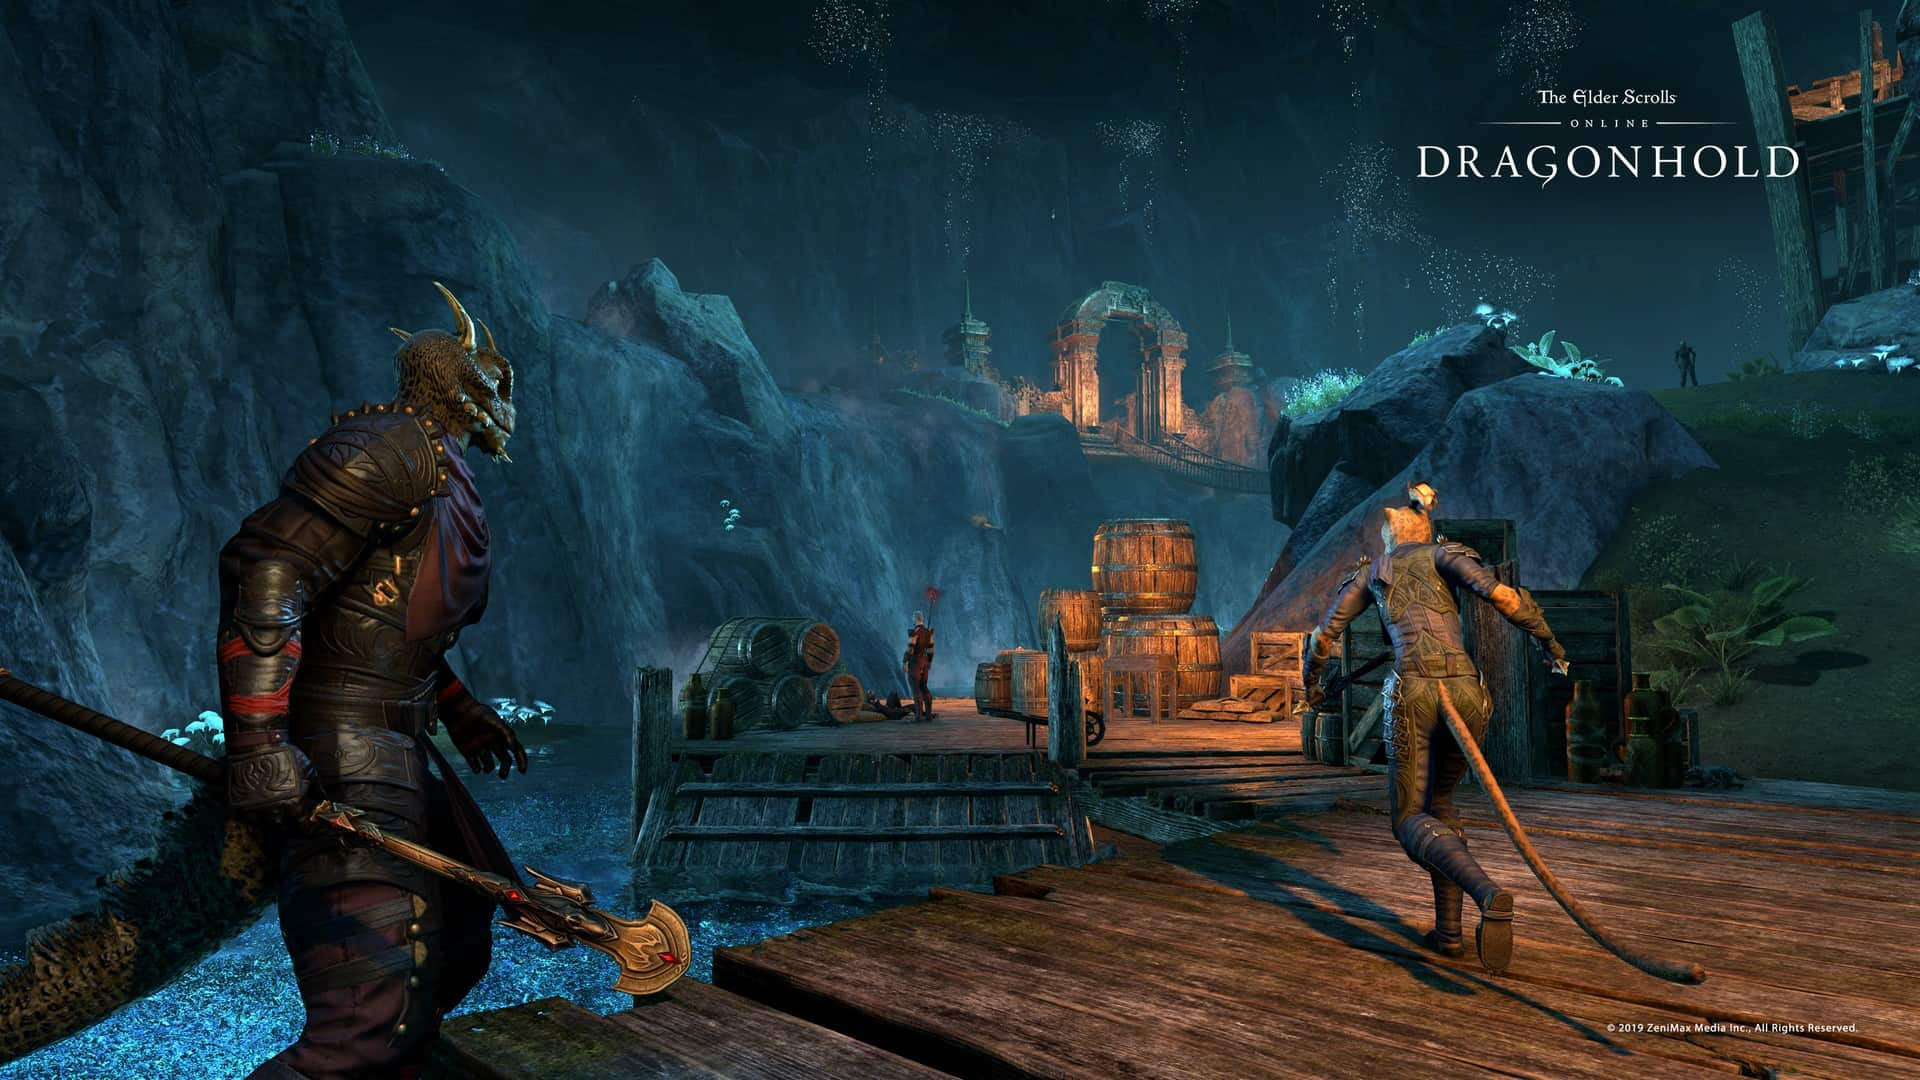 The Elder Scrolls Online: Dragonhold DLC and Update 24 Preview